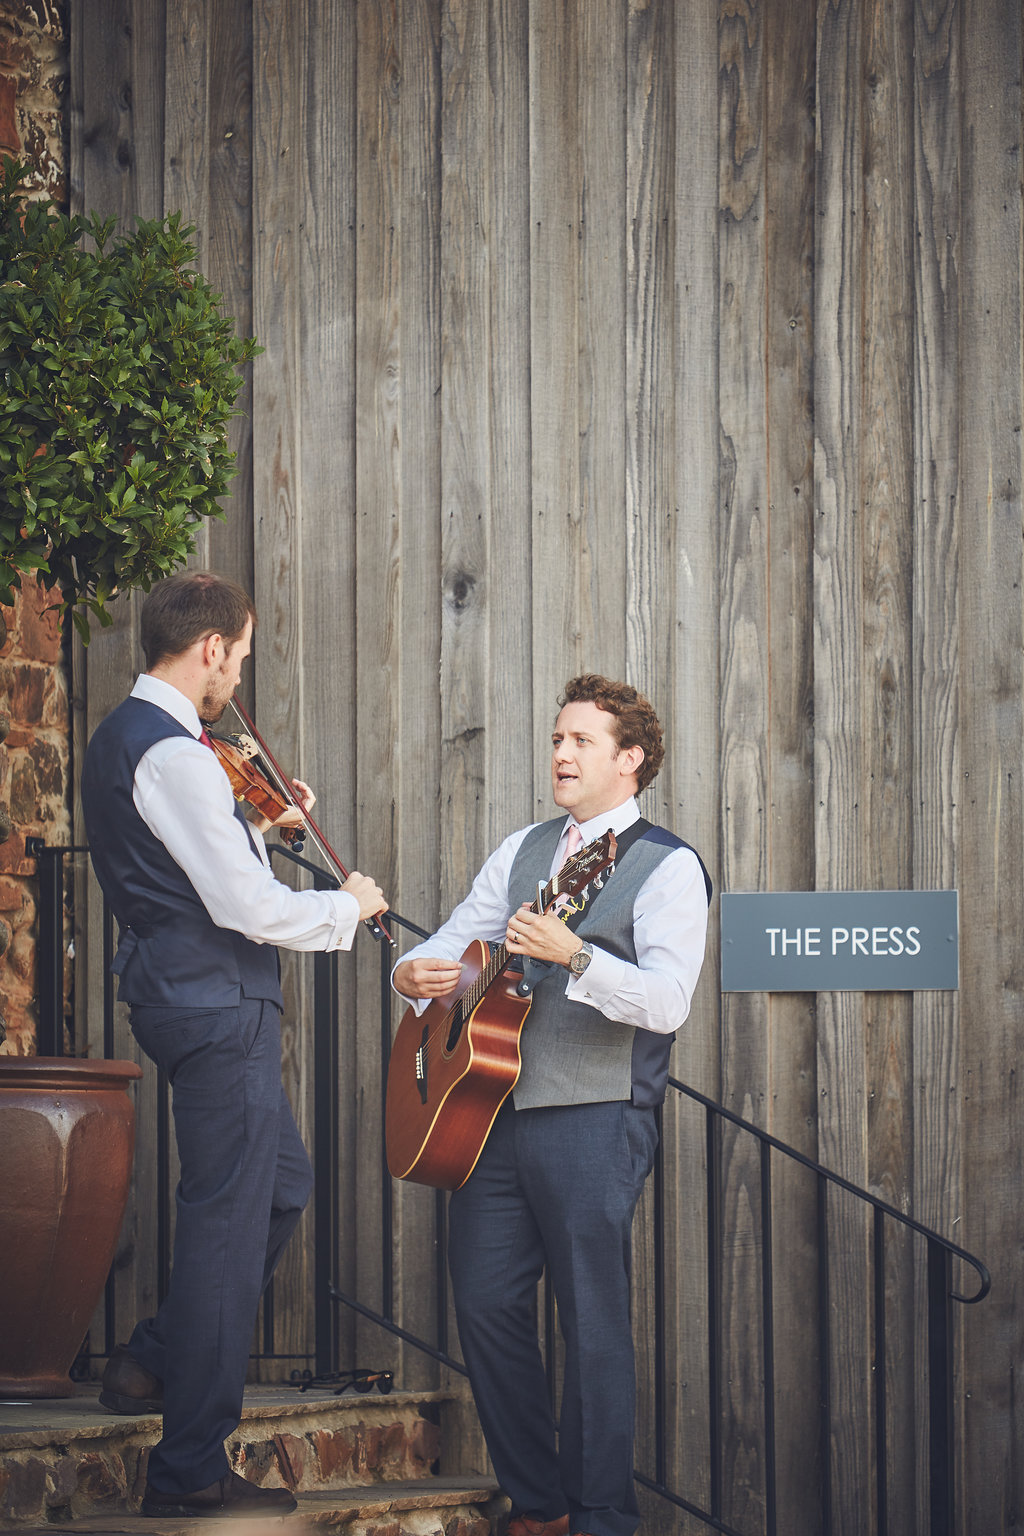 Guitarist and violinist play outside The Press bar at Upton Barn & Walled Garden